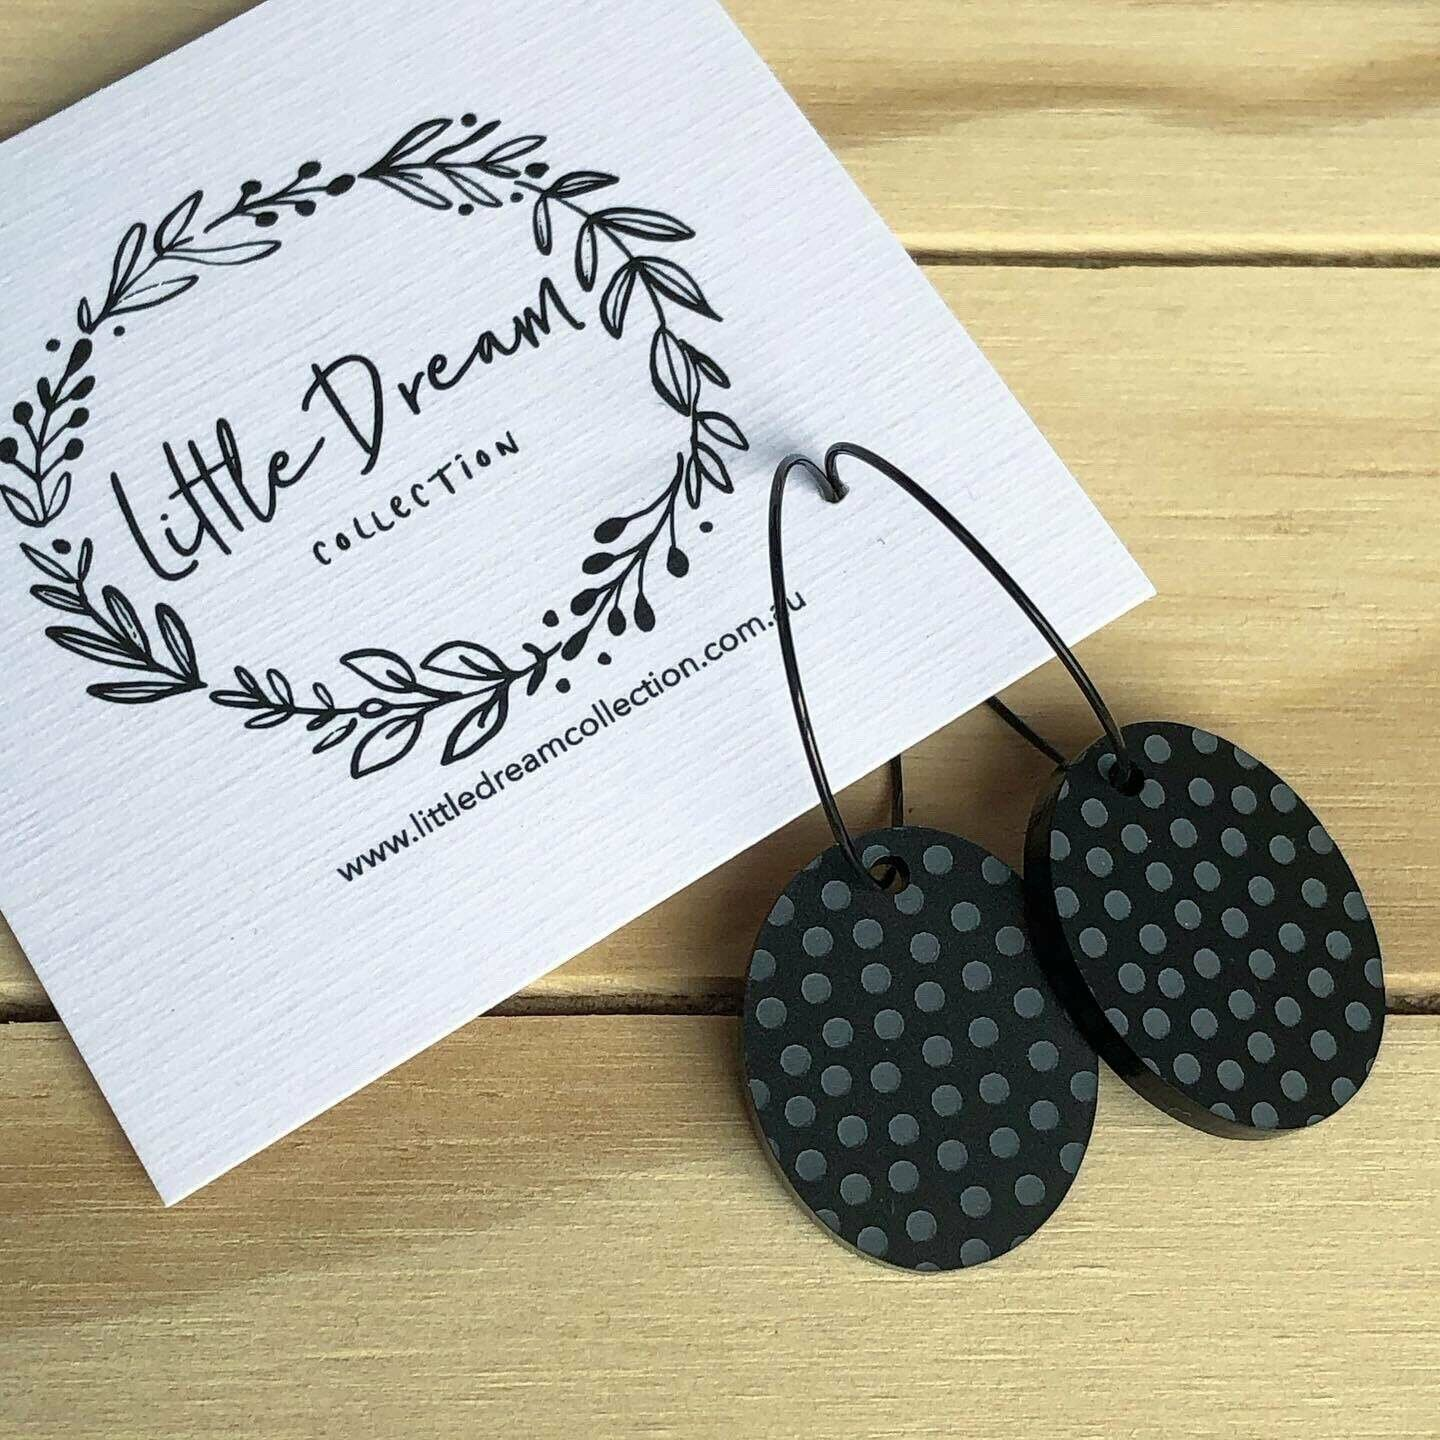 Polka dot hoops | hoop earrings | black acrylic earrings | mirror acrylic earrings | Australian made | Polka Dot Earrings